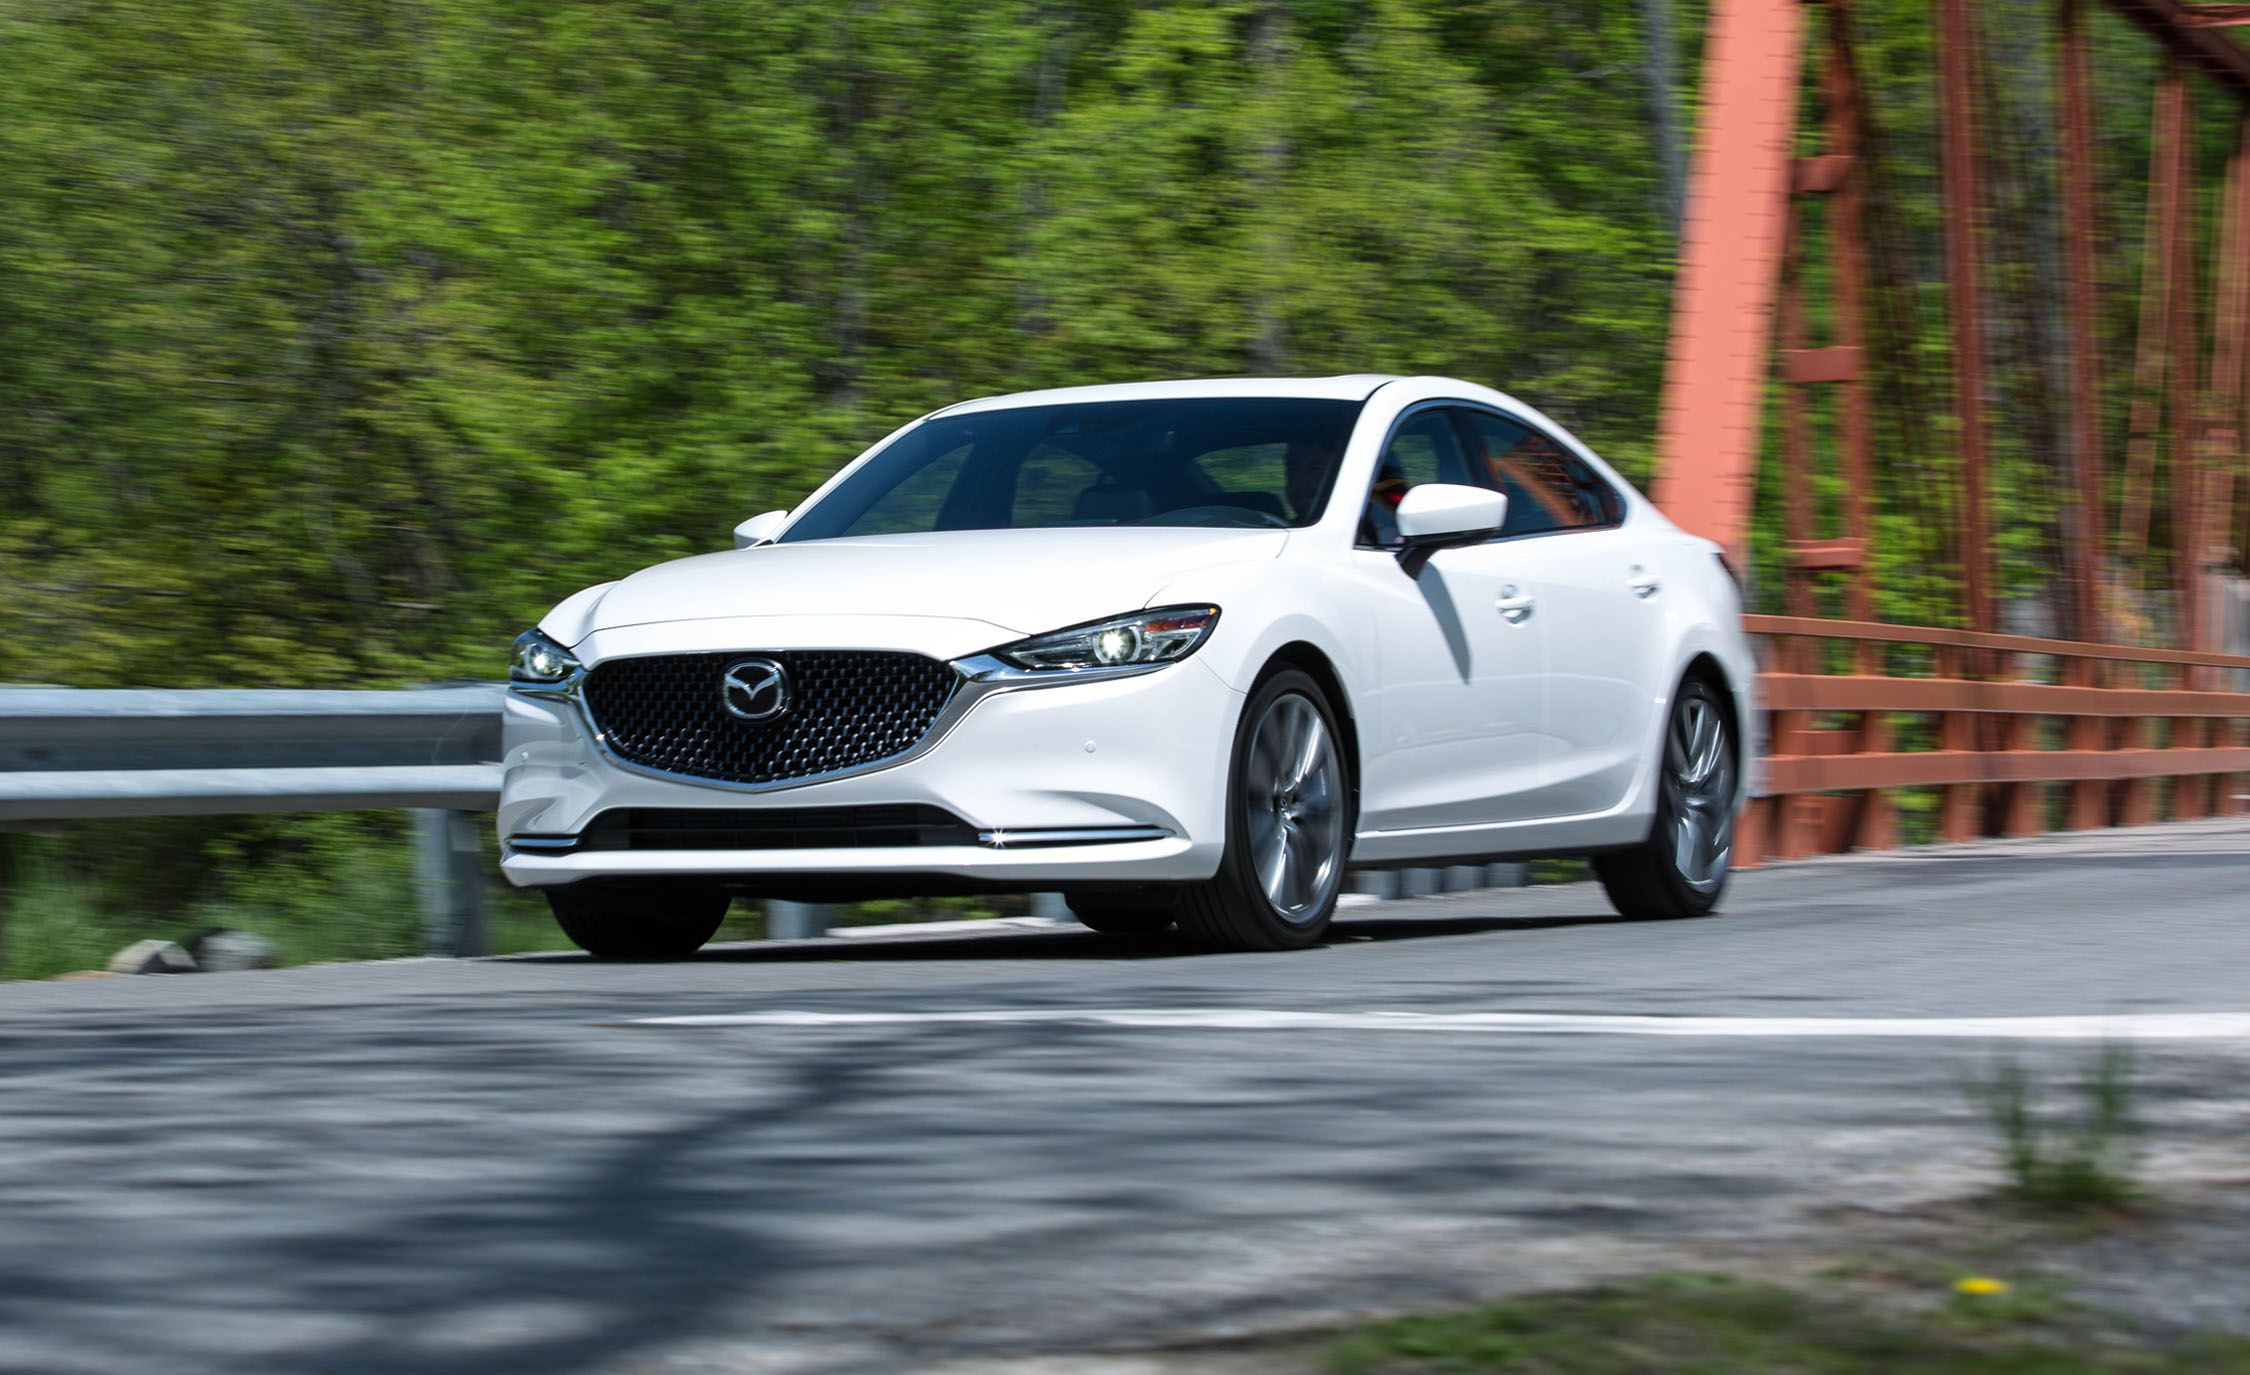 10 Reasons Why the 2018 Mazda 6 Should Be on Your Family-Sedan Short List